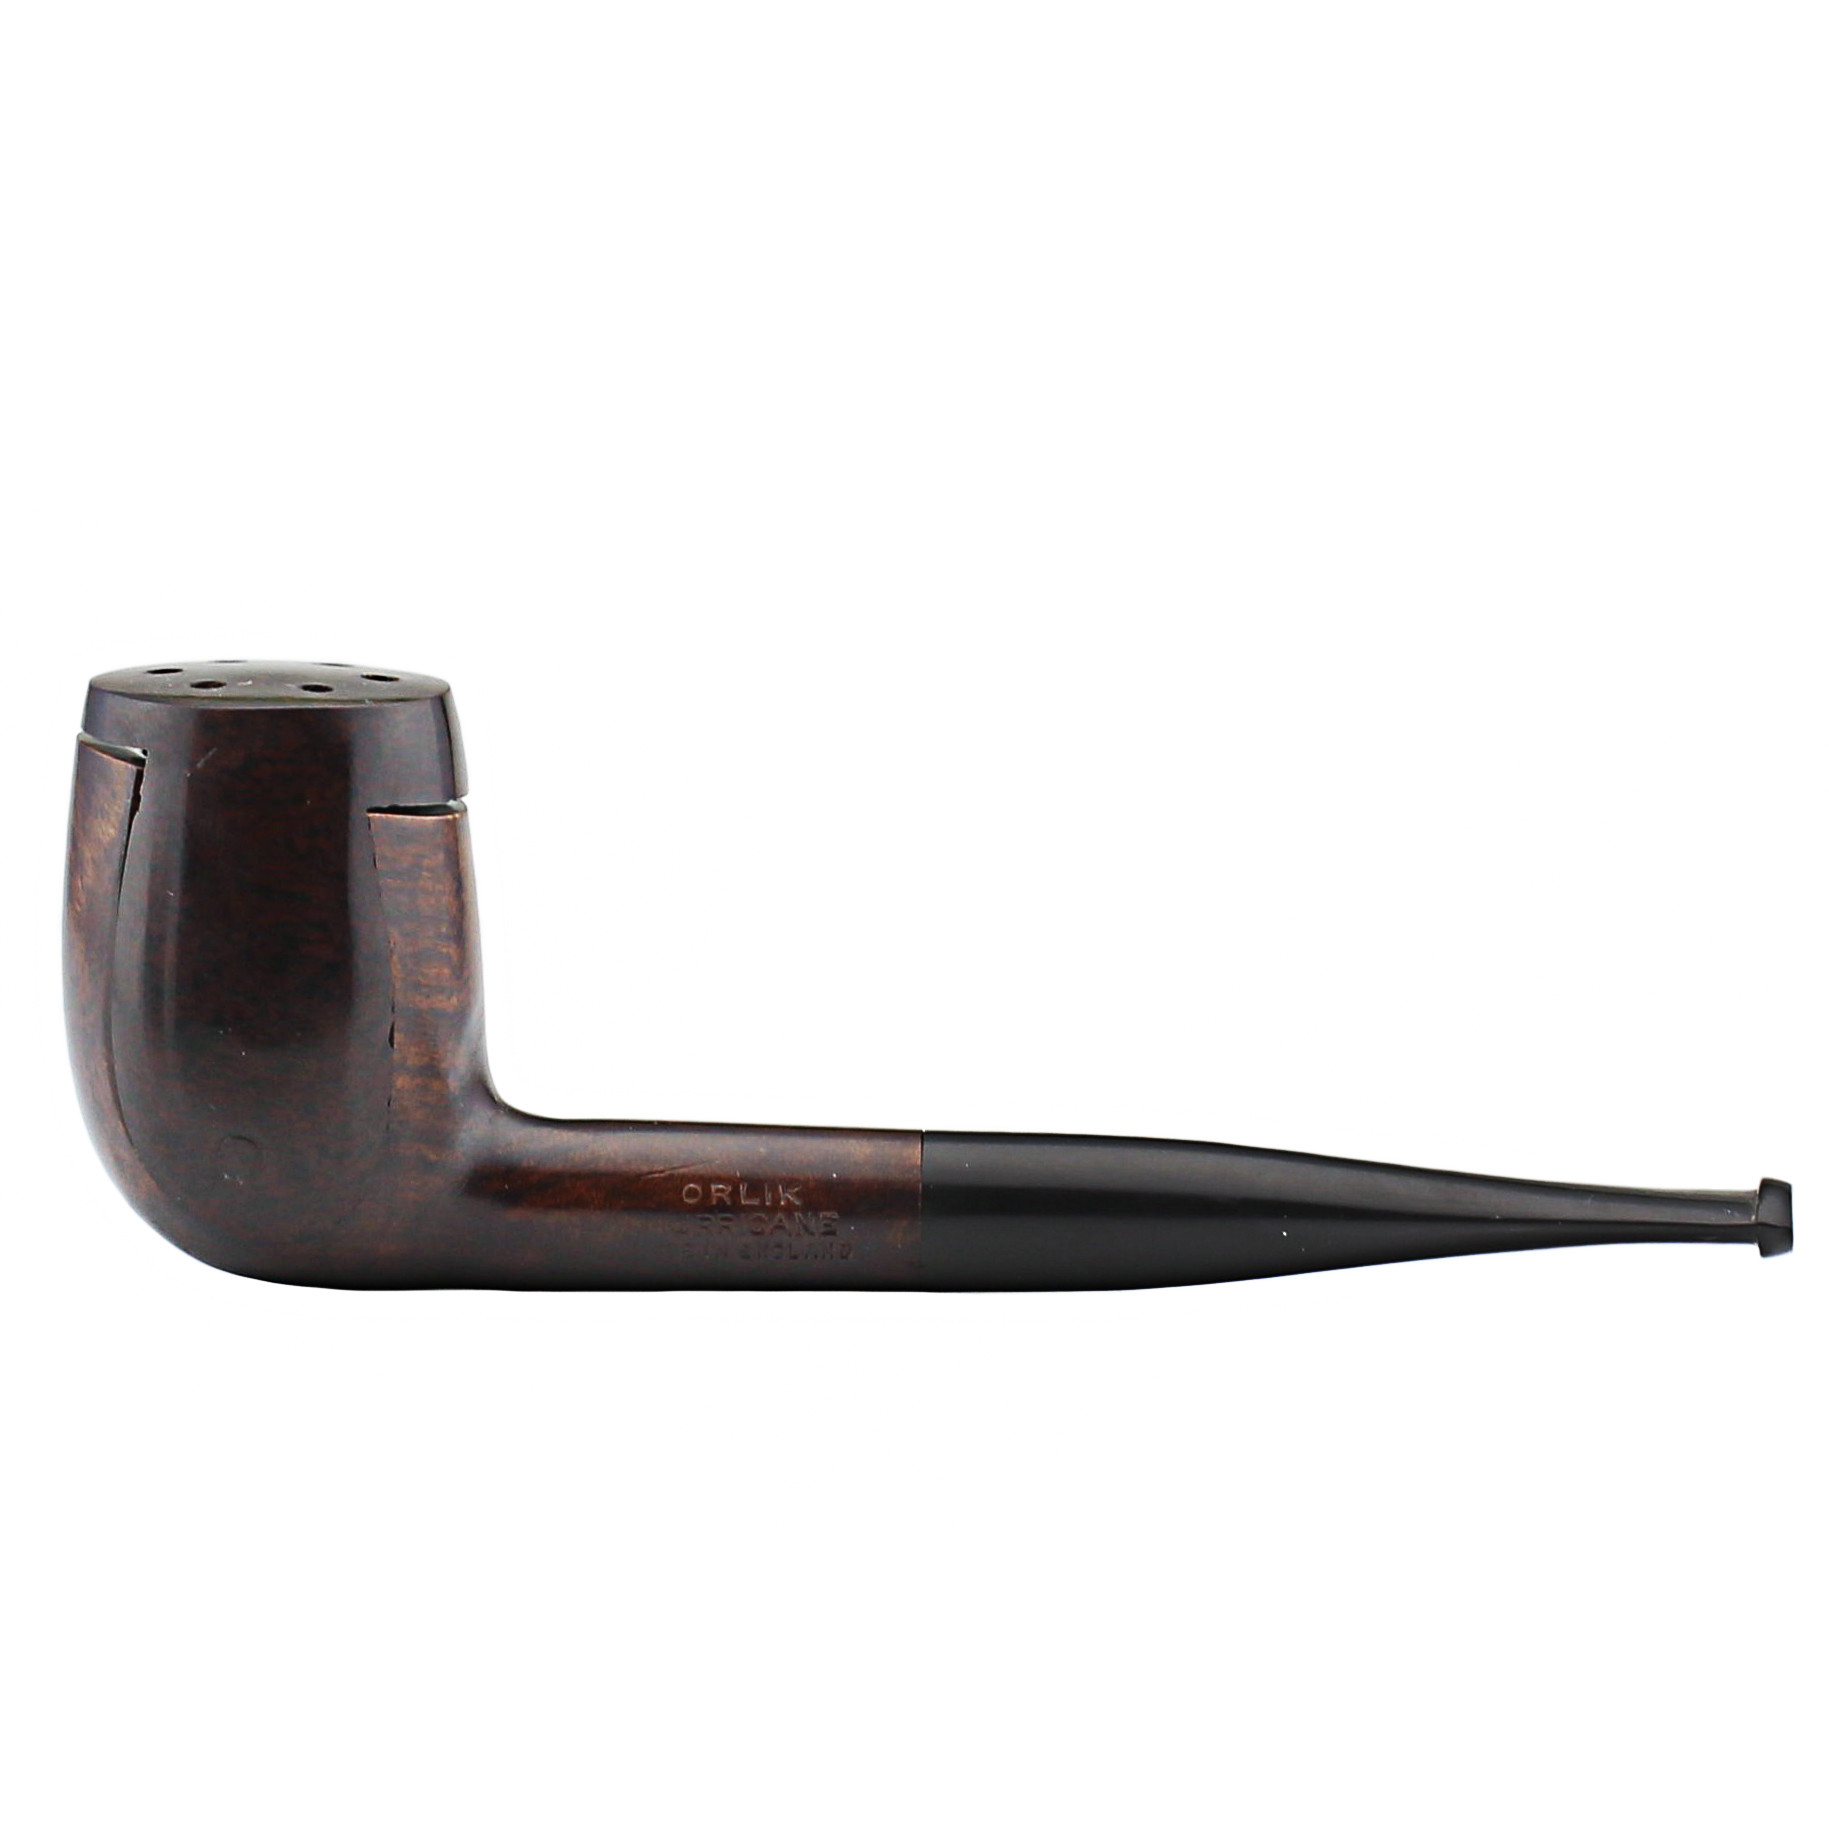 History of BBB Pipes